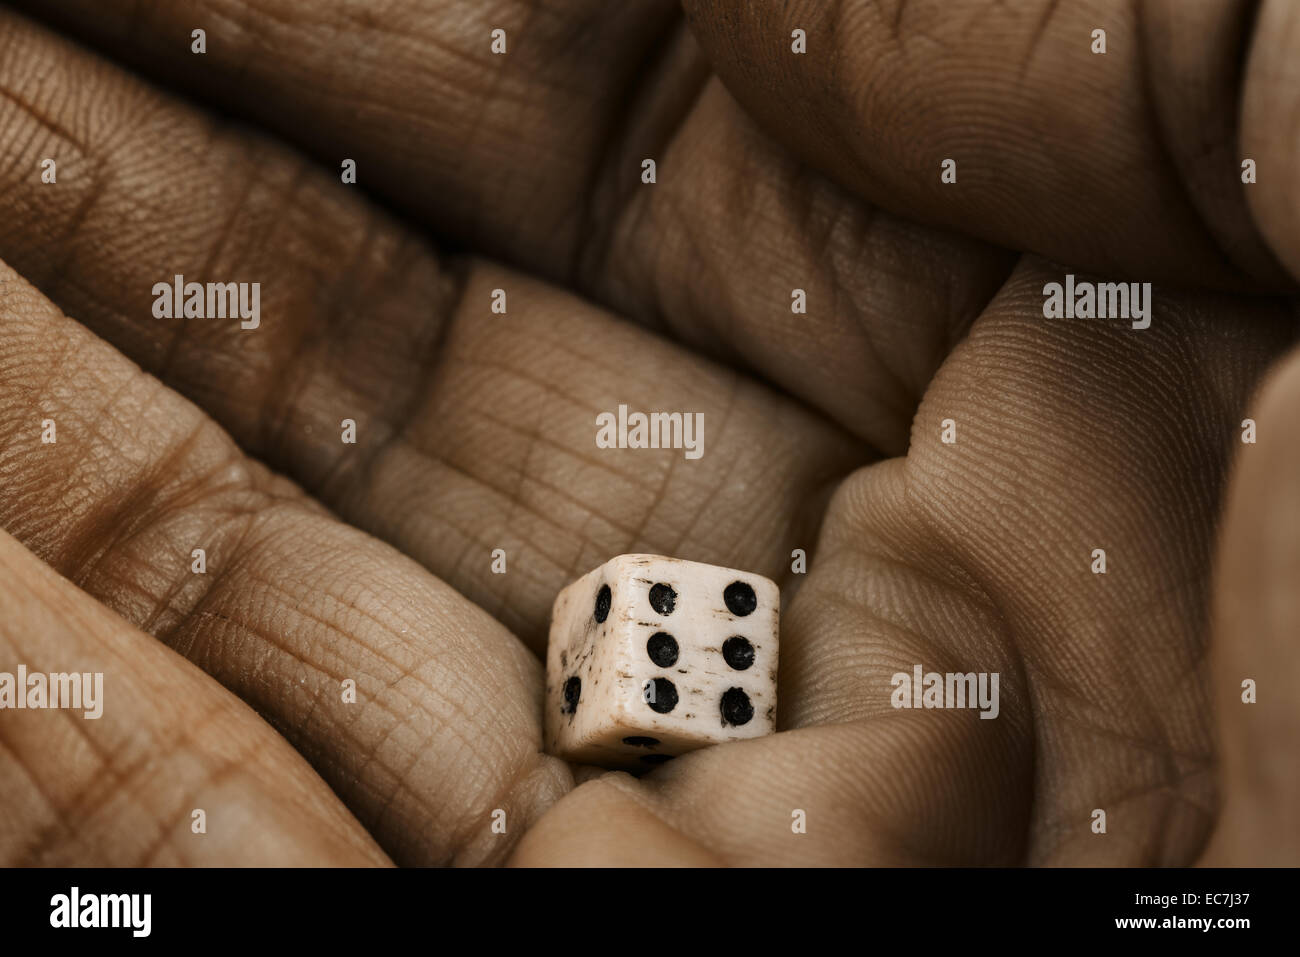 An old Victorian bone dice held in the palm of a hand ready to be thrown and the fate of the throw of the die found - Stock Image